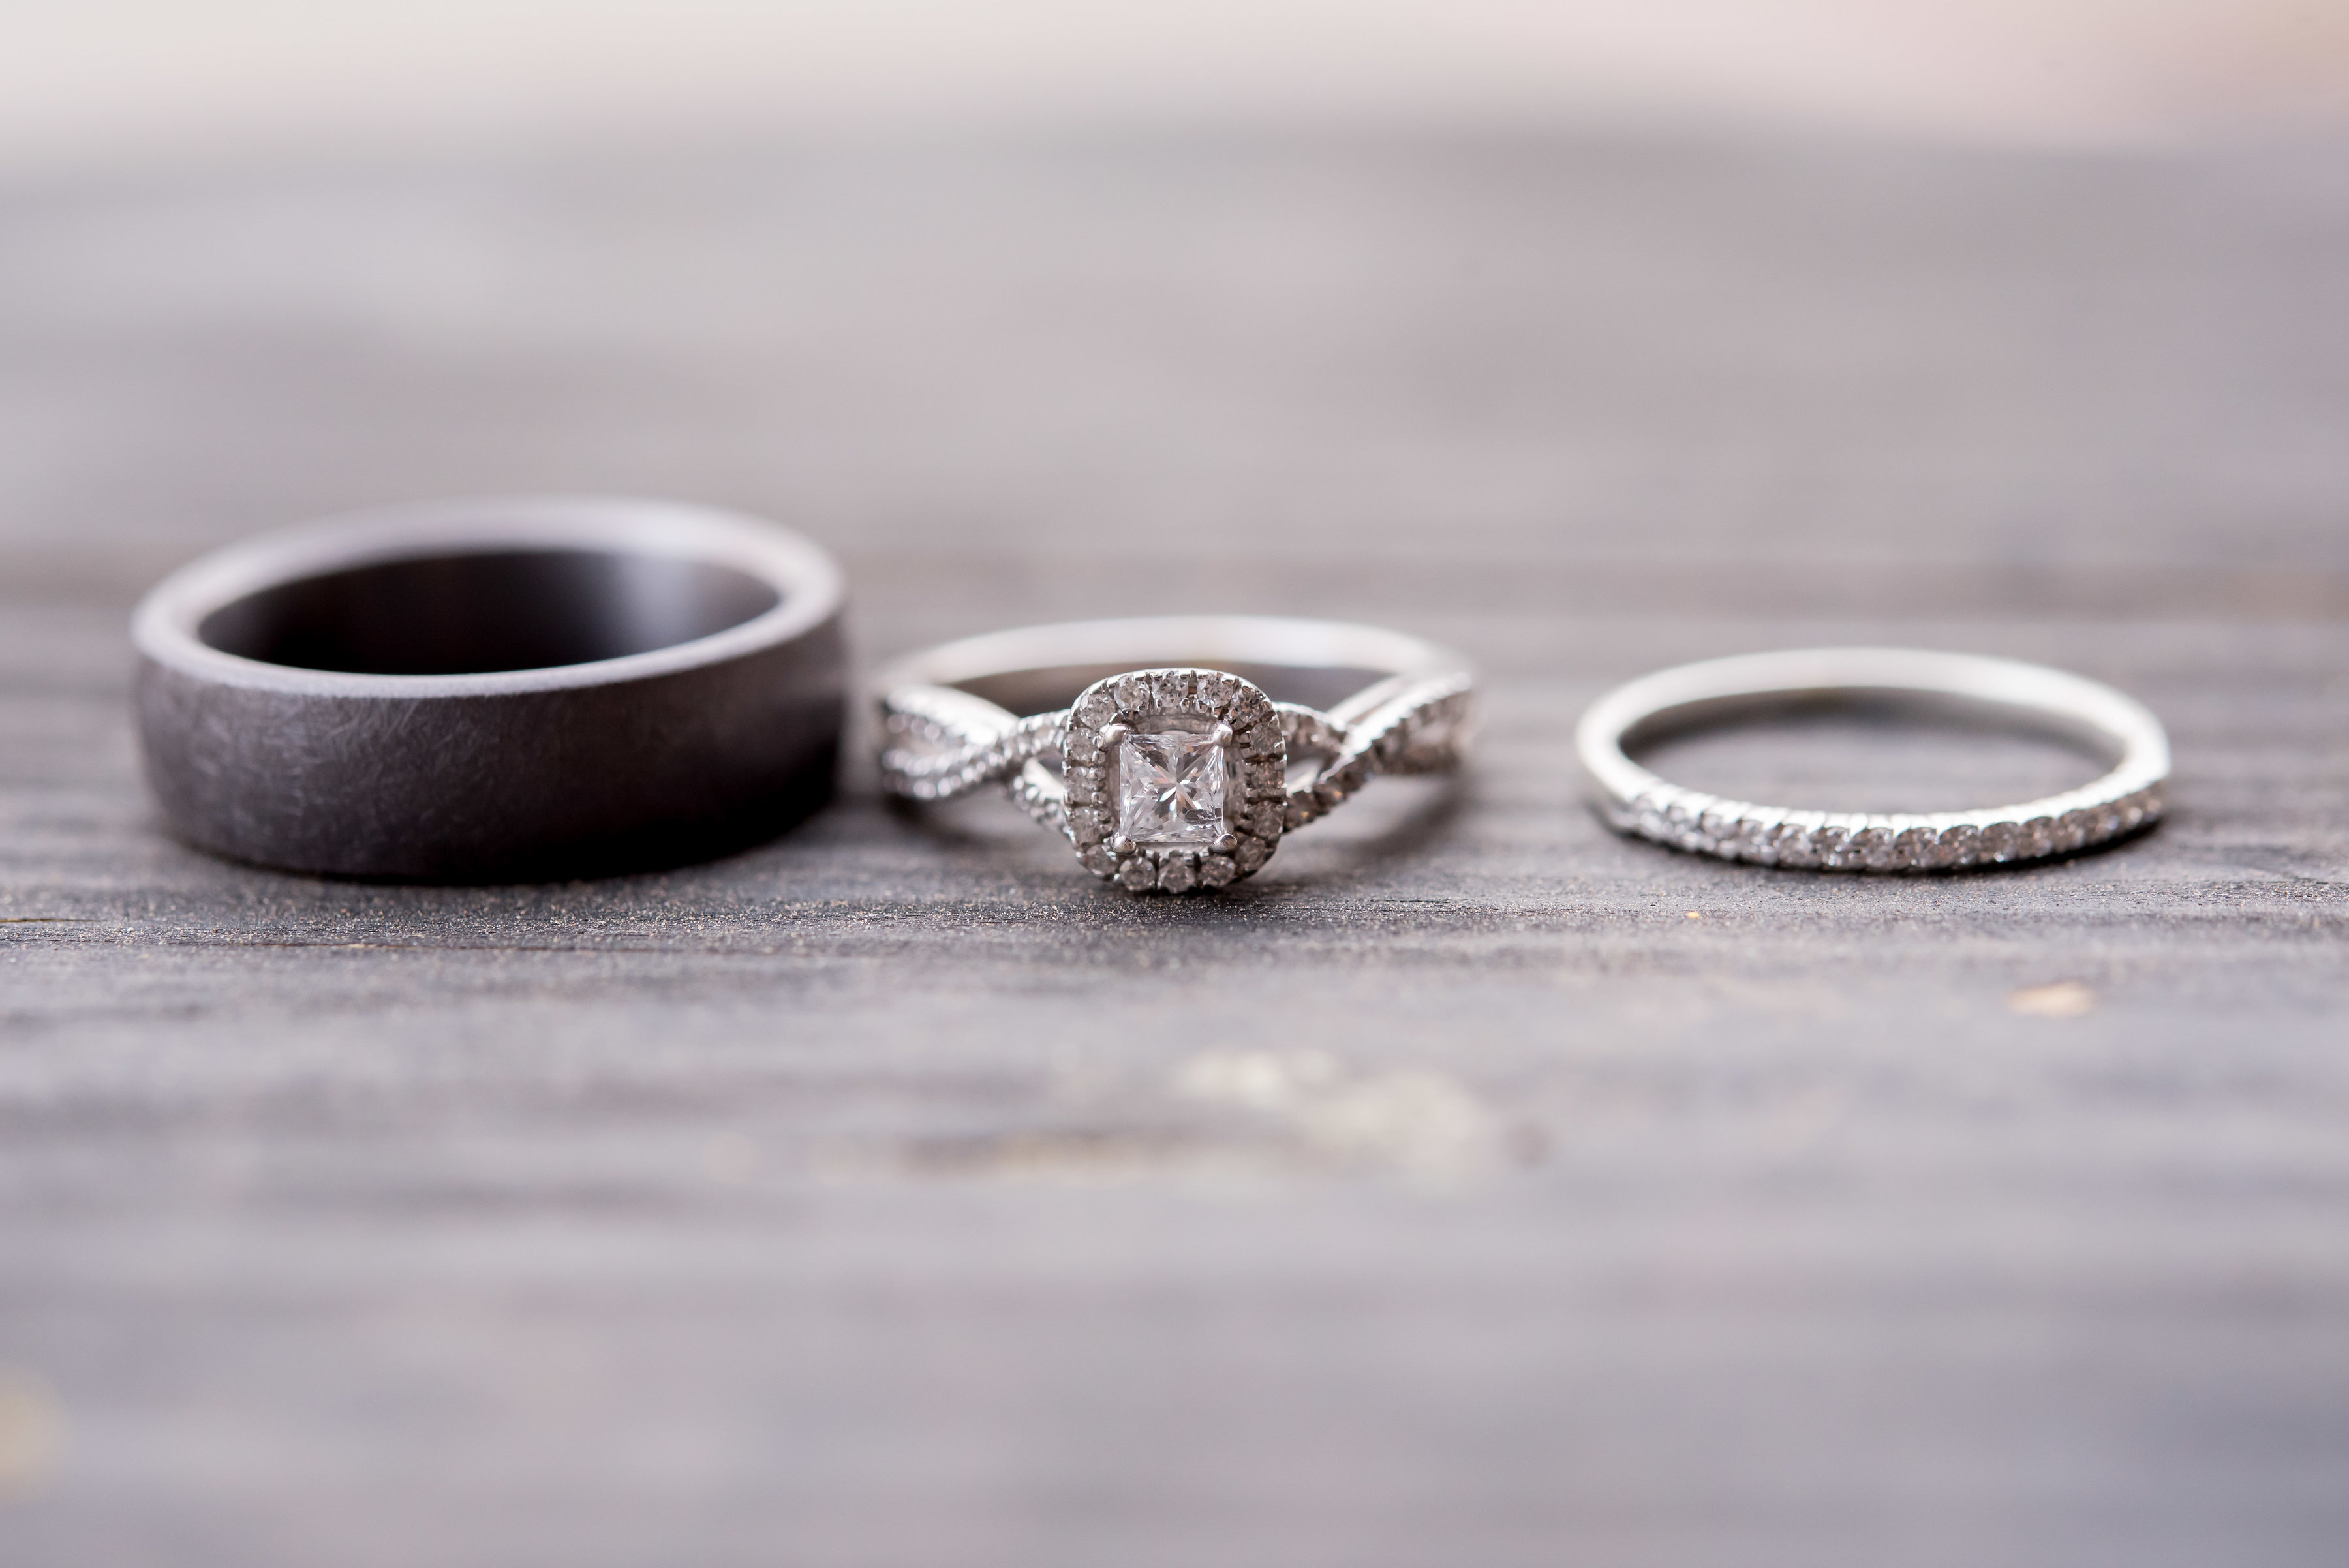 wedding planning design decor inspo real local New Mexico Perfect Wedding Guide ring shot detail photography diamond engagement jewelry close up bride groom romantic